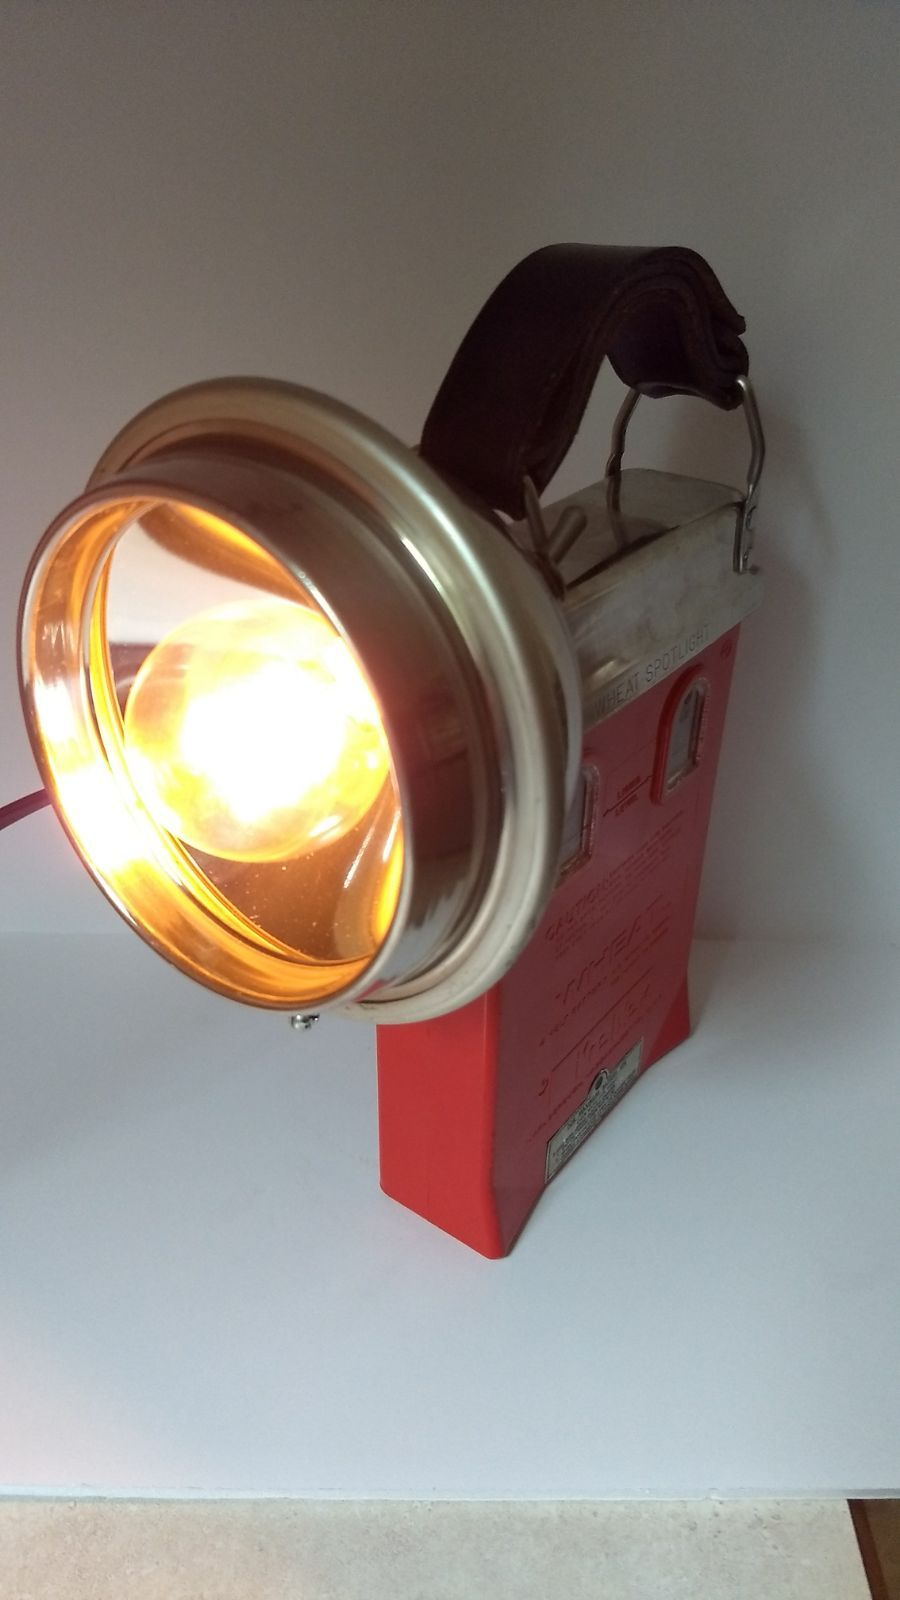 Koehler Wheat Fire Rescue Spot Light Vintage Bulb Recycled Lamp Vintage Lamps